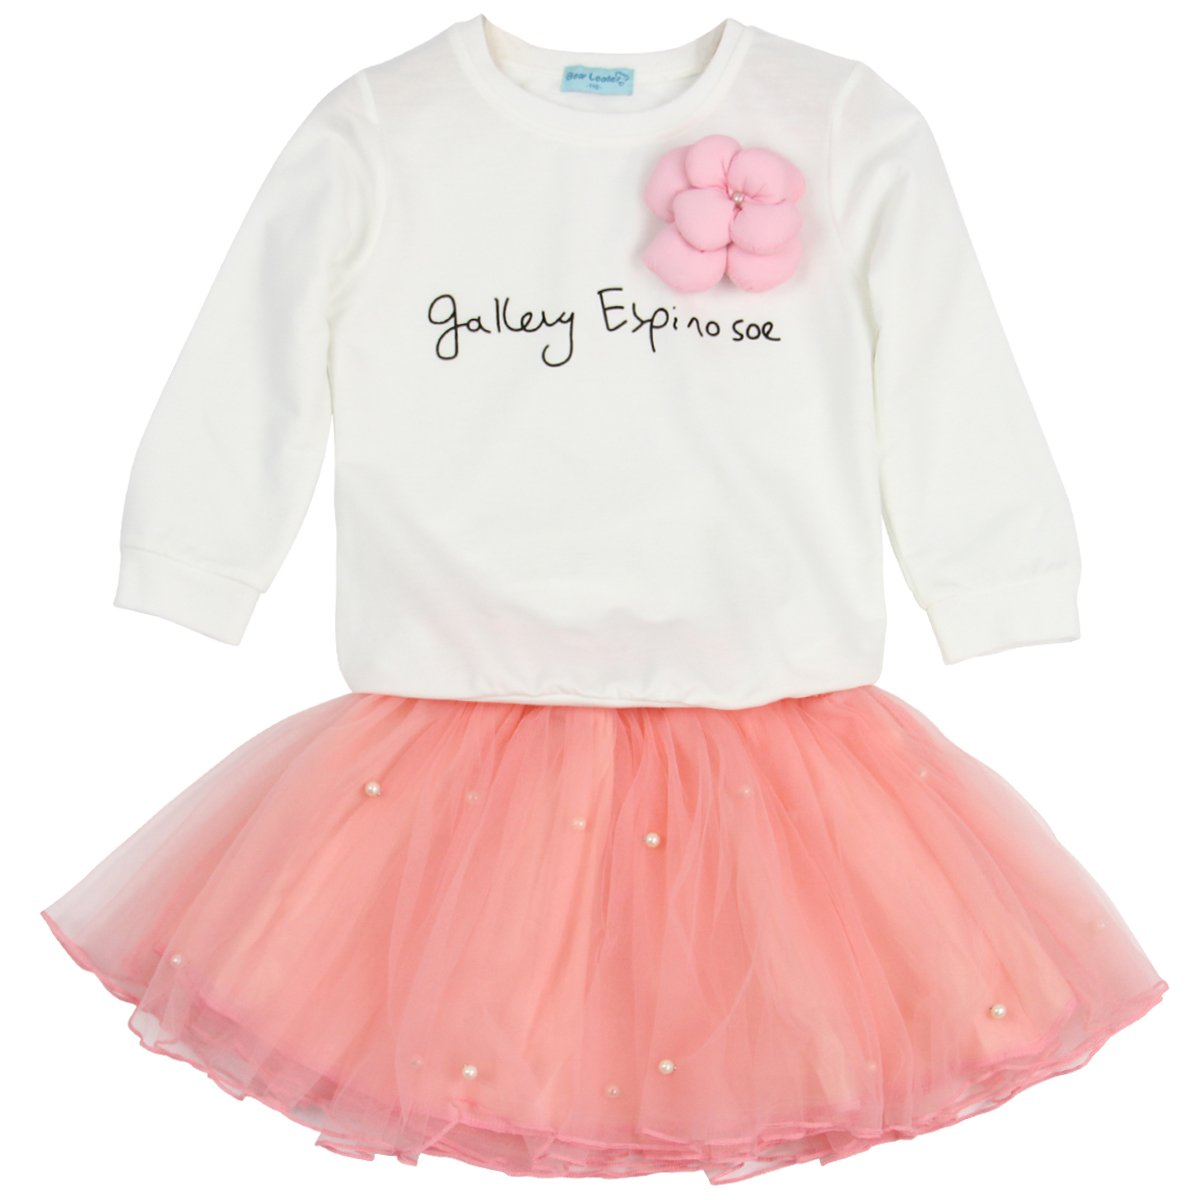 Jastore Kids Girl Cute 2PCS Flower Clothing Set Long Sleeve Top +Pink Tutu Skirt